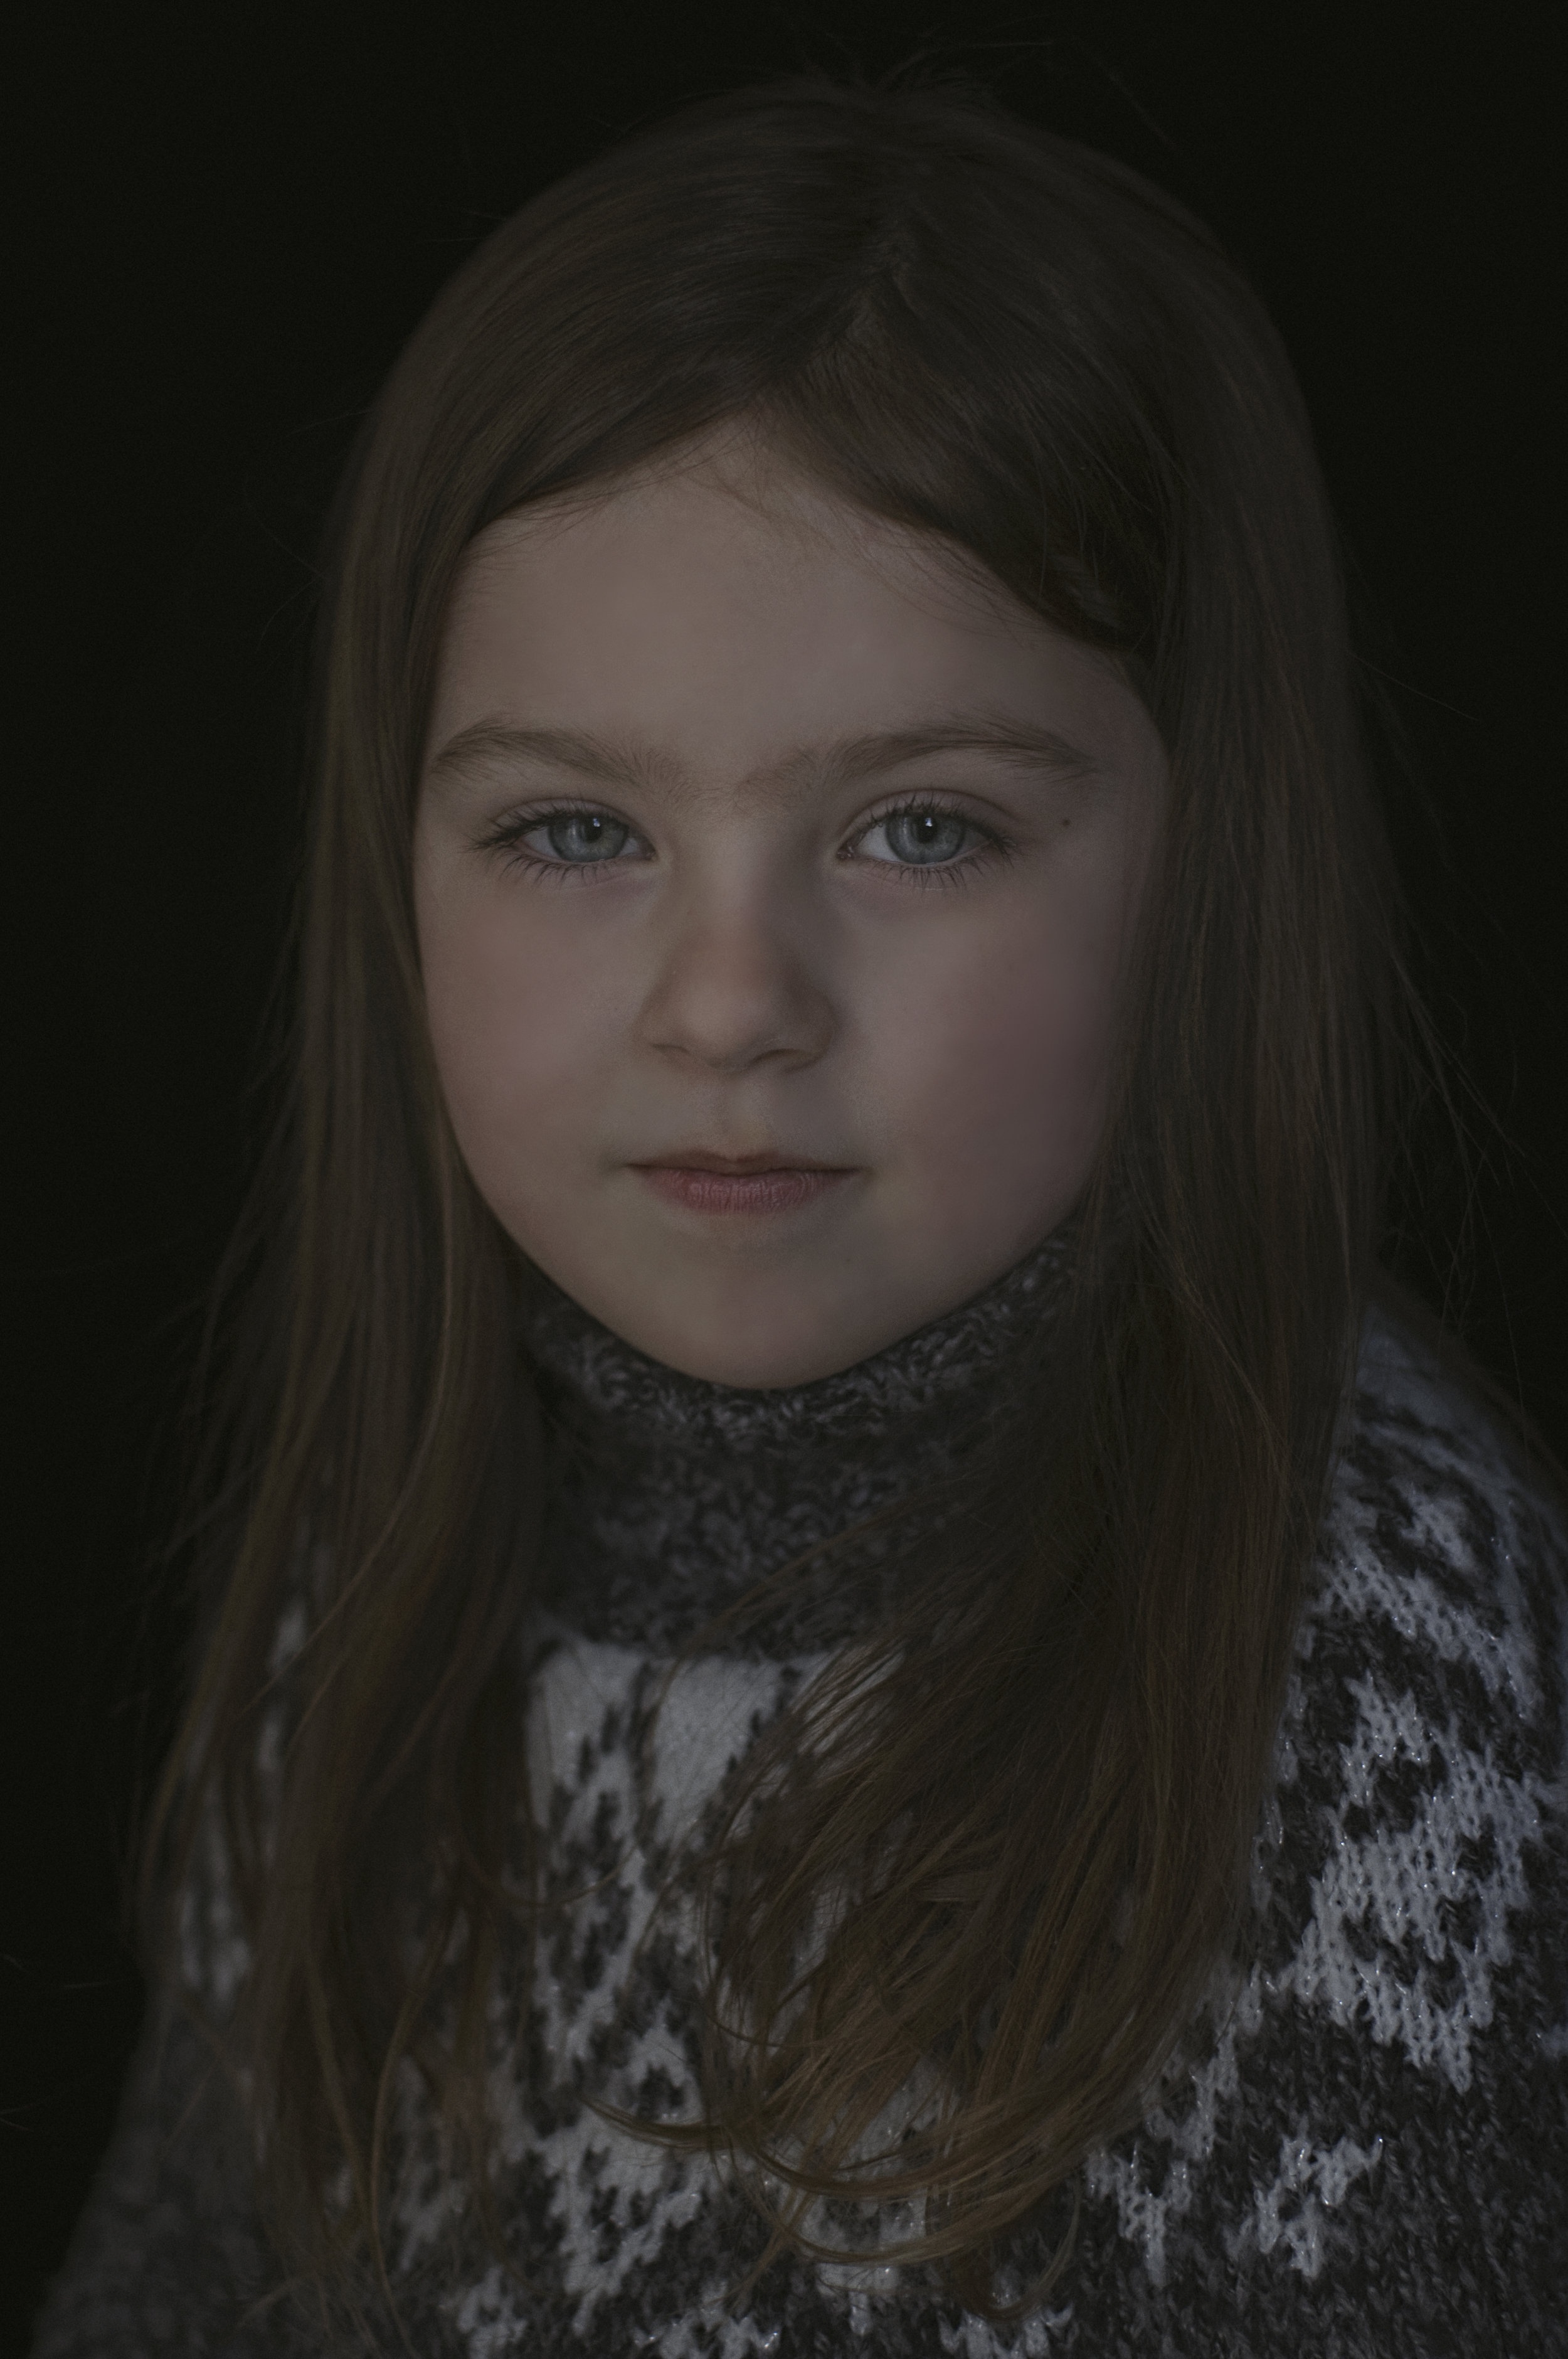 Portrait of a Still Child